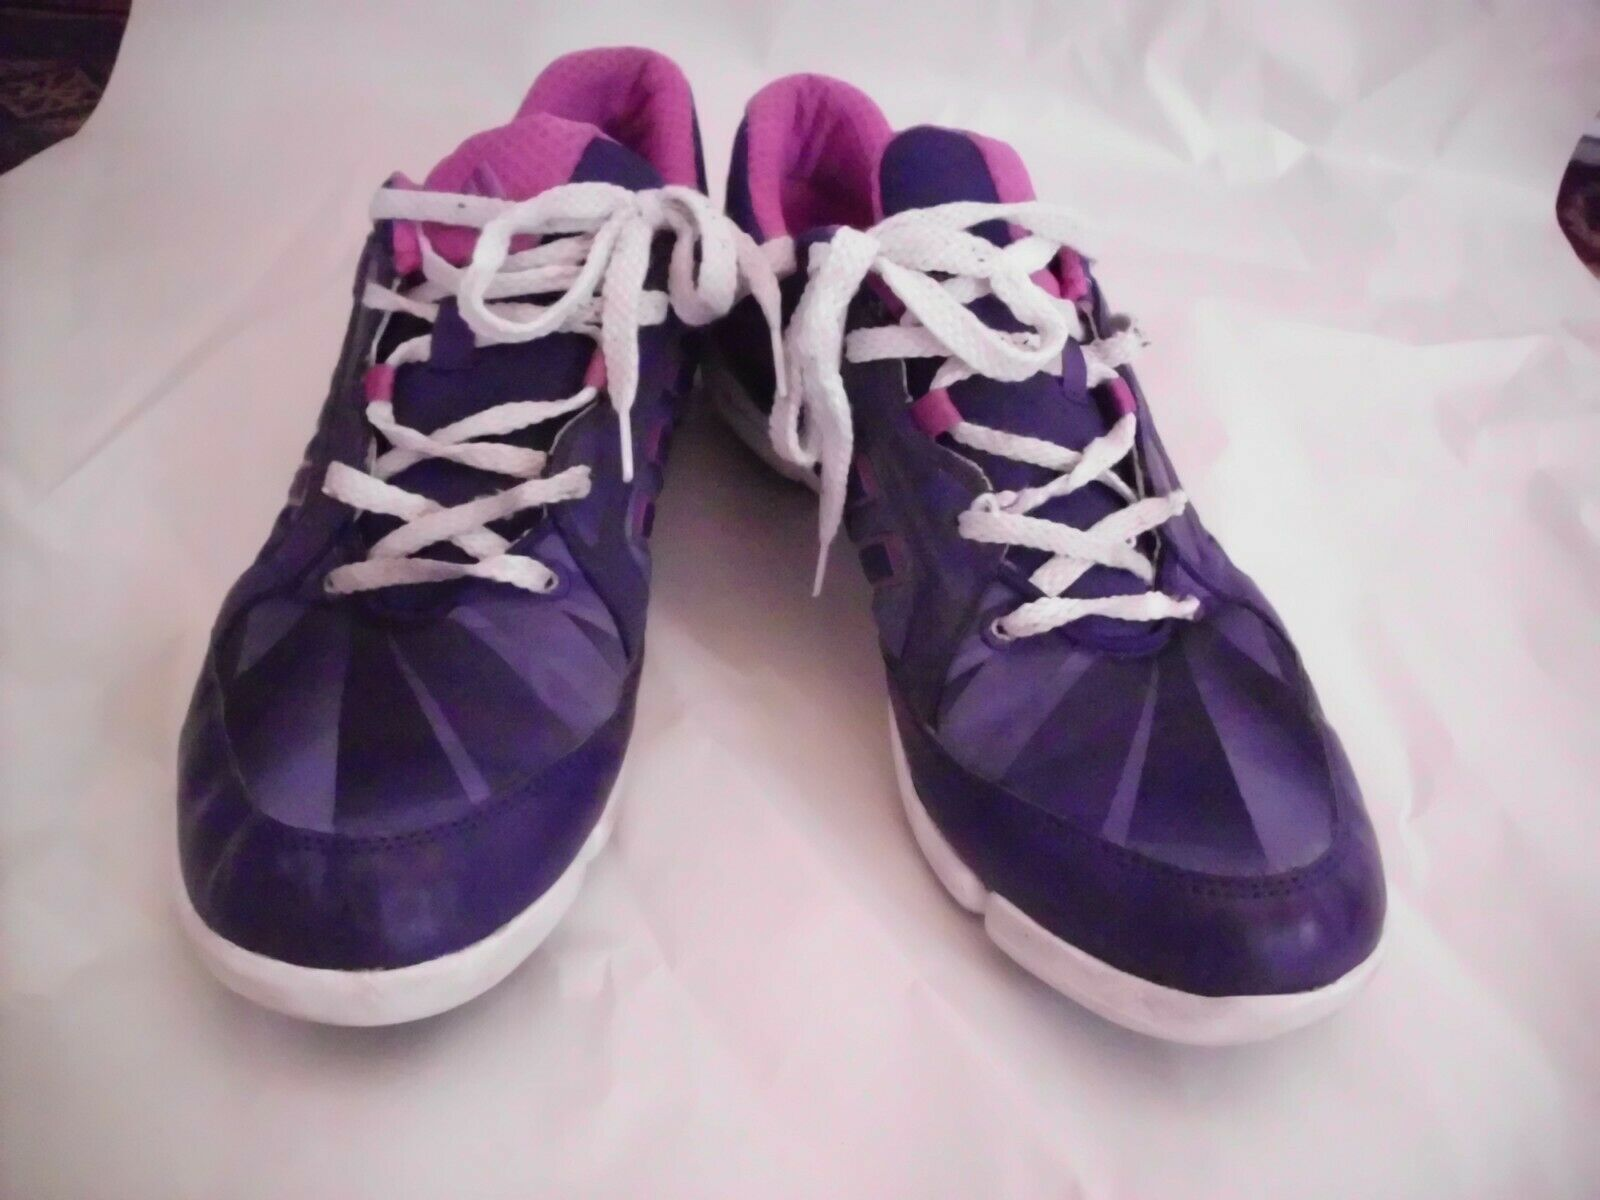 ADIDAS ADIPRENE Sneakers 9.5 Womens Purple Pink White Running Walking